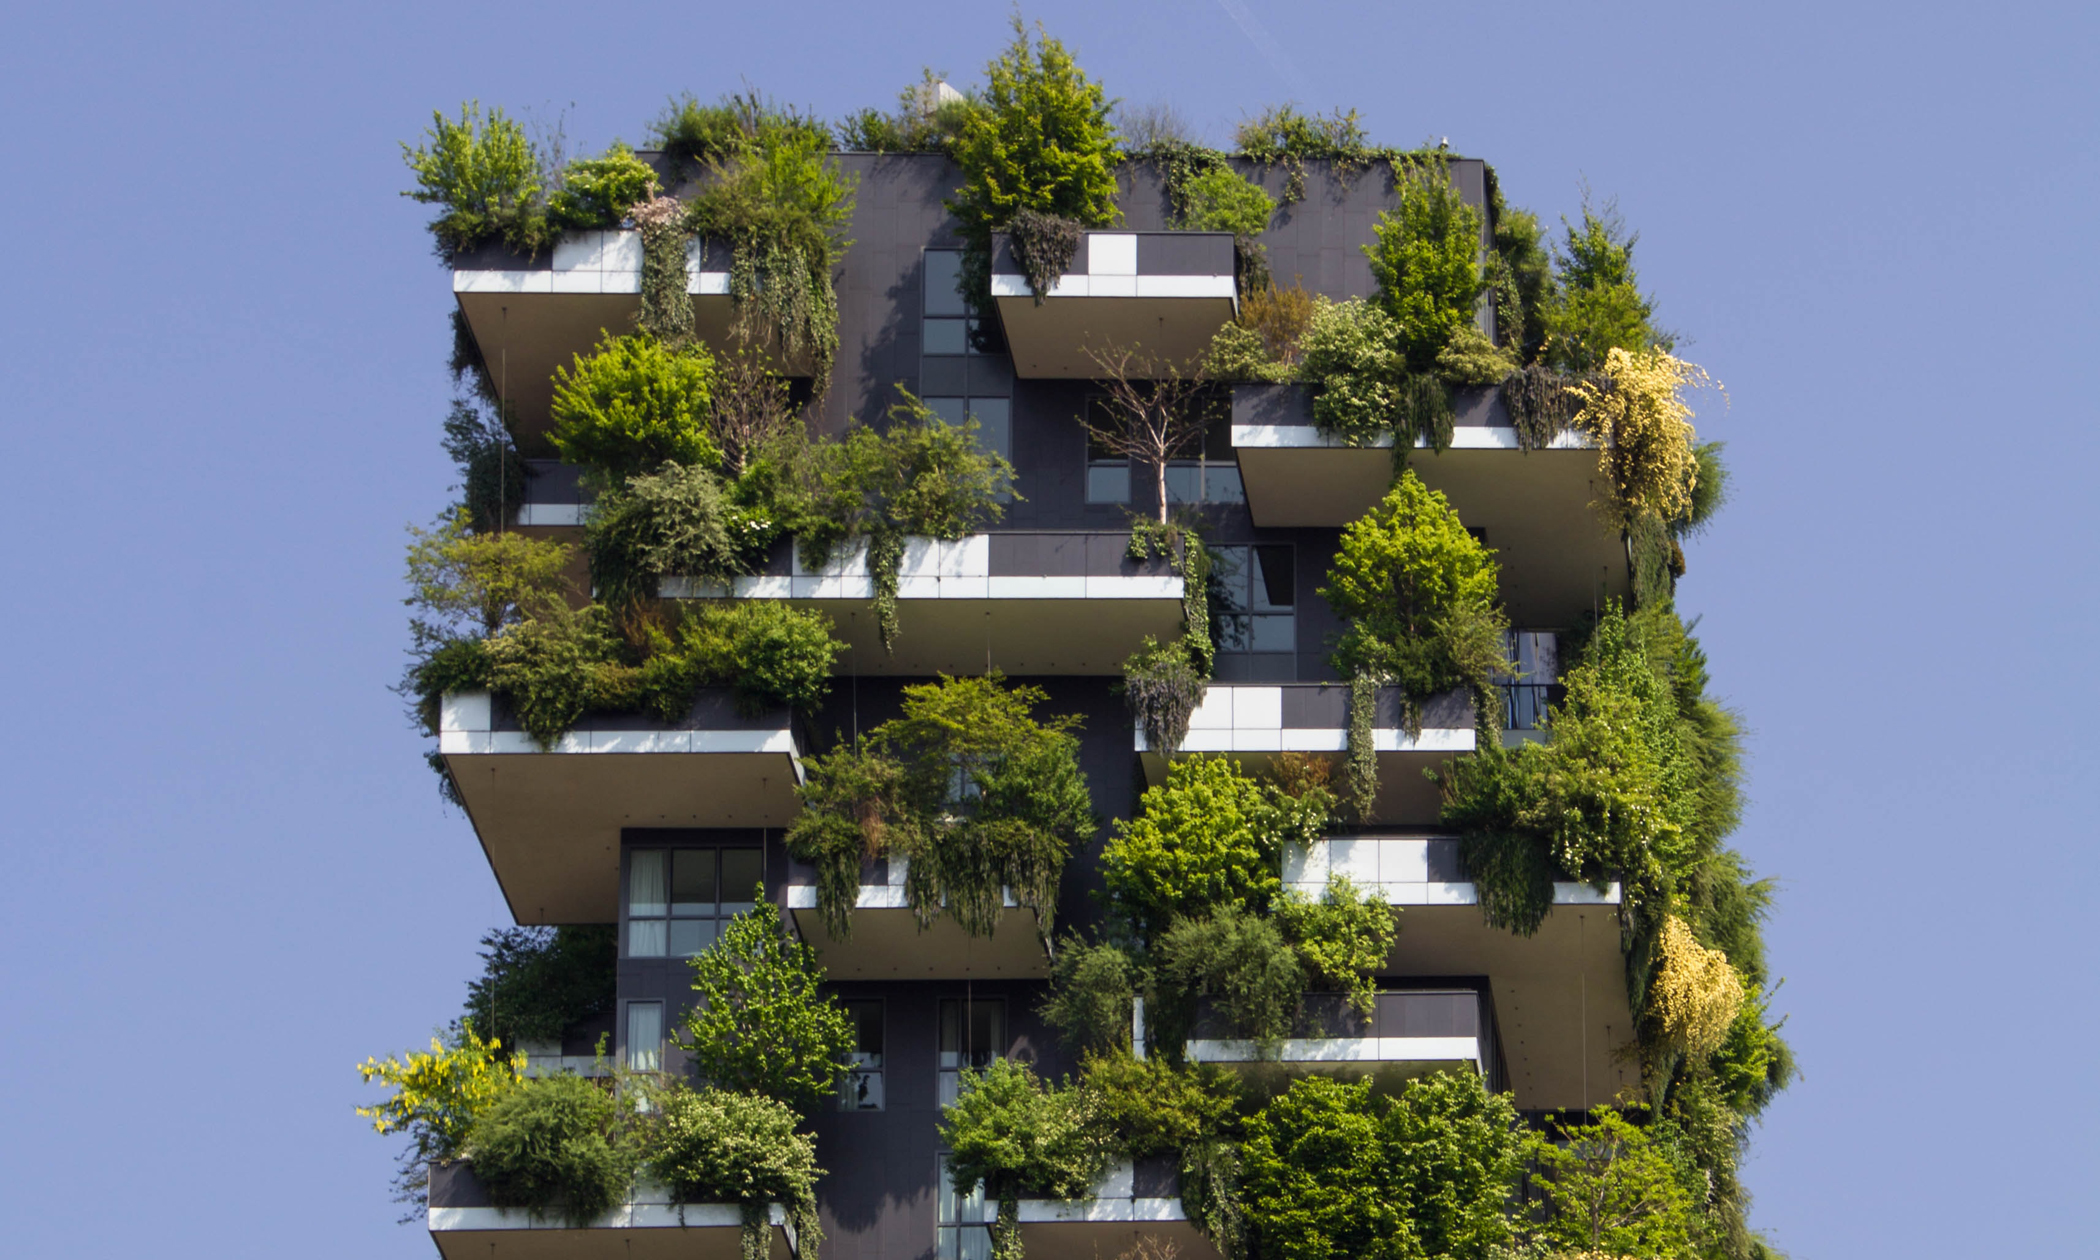 Image by Victor Garcia - an apartmenr building covered in green plants